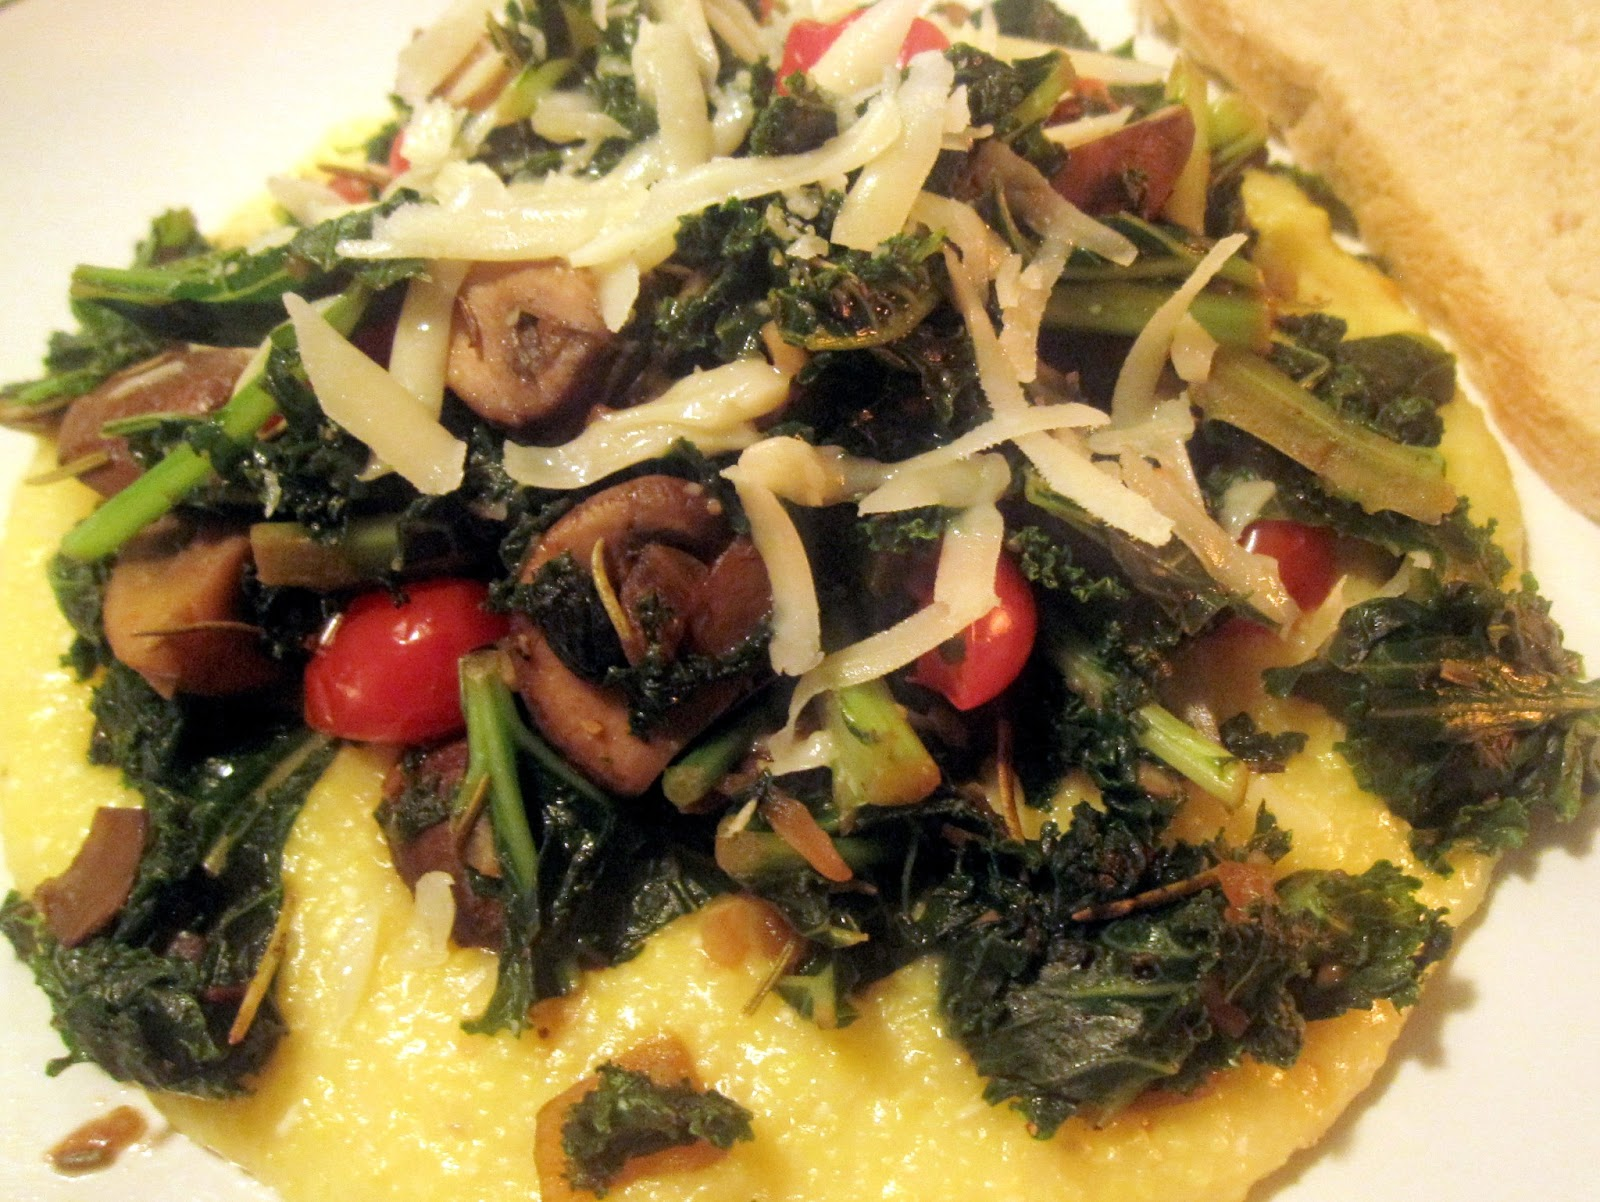 Food for the Week: Creamy Polenta with Kale, Mushrooms, and Tomatoes